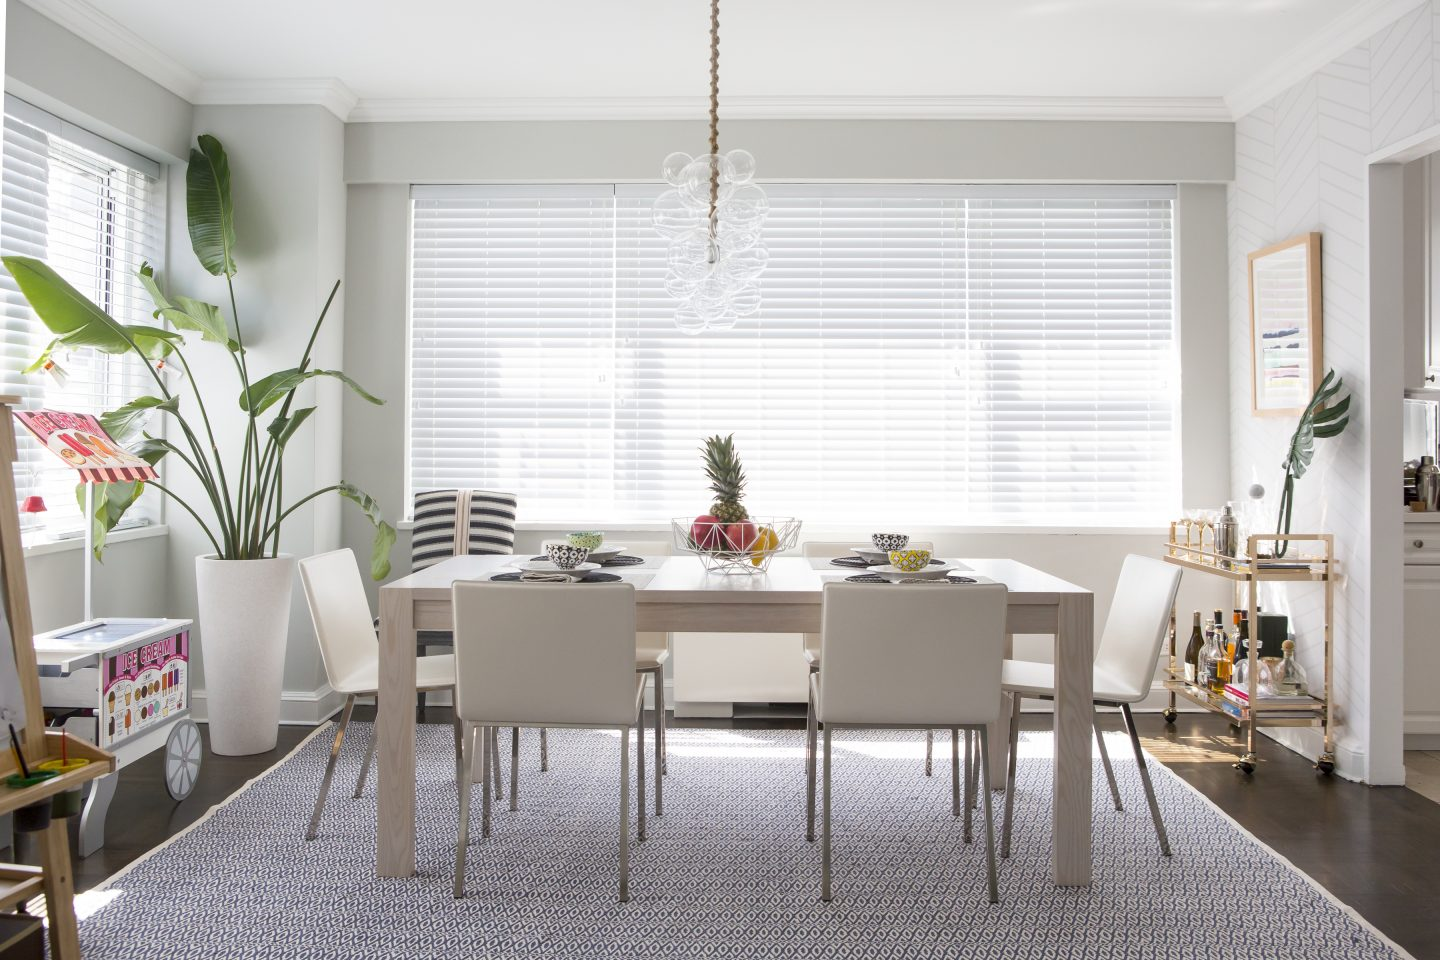 Dining Room Design, by Get Decorated